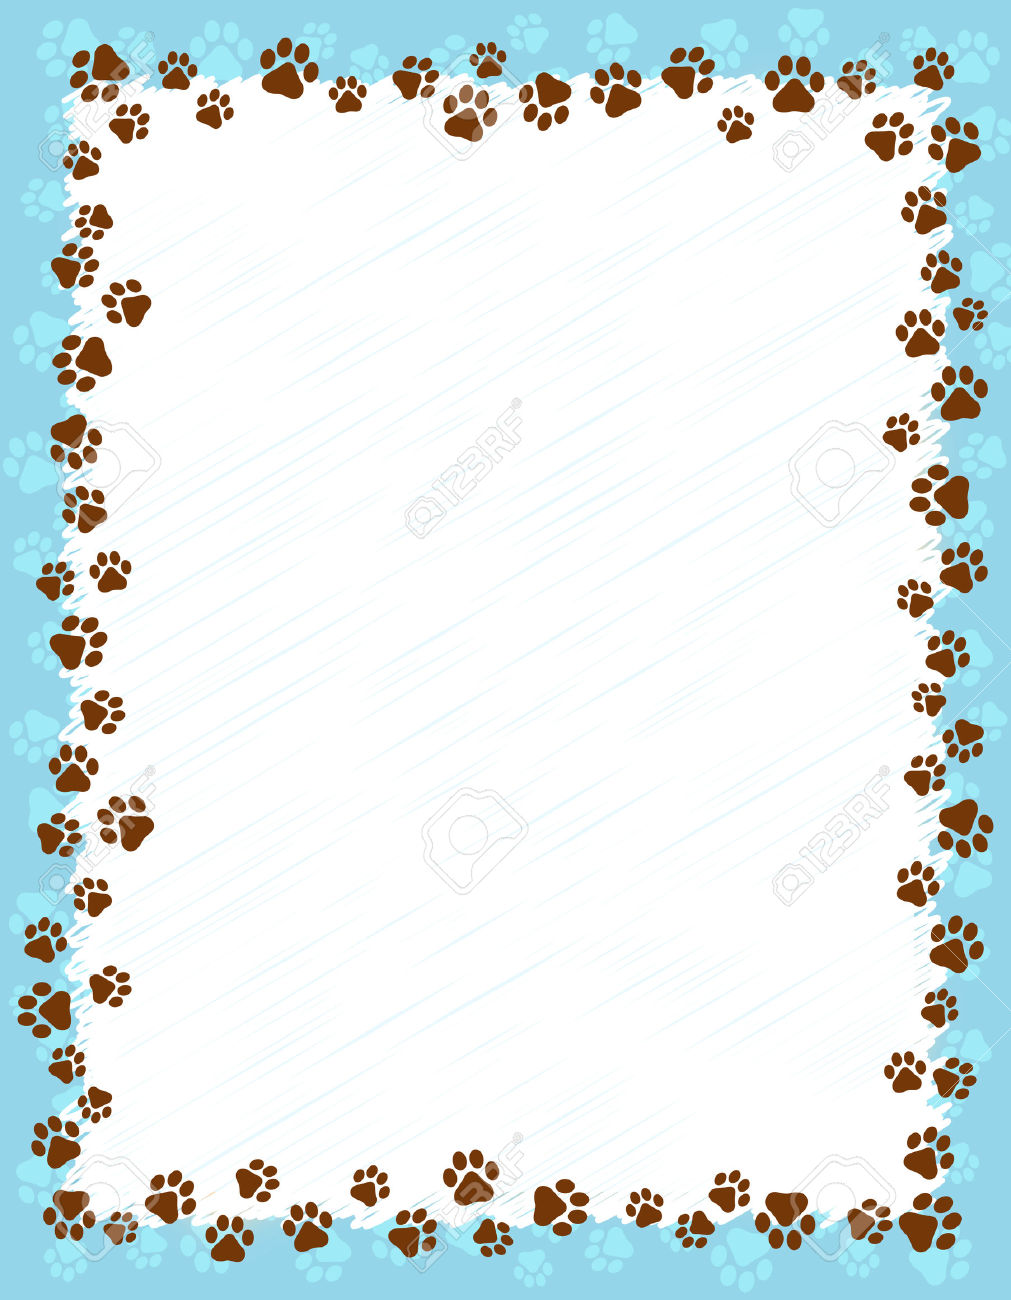 Dog Paw Prints Border / Frame On Light Blue Grunge Background.